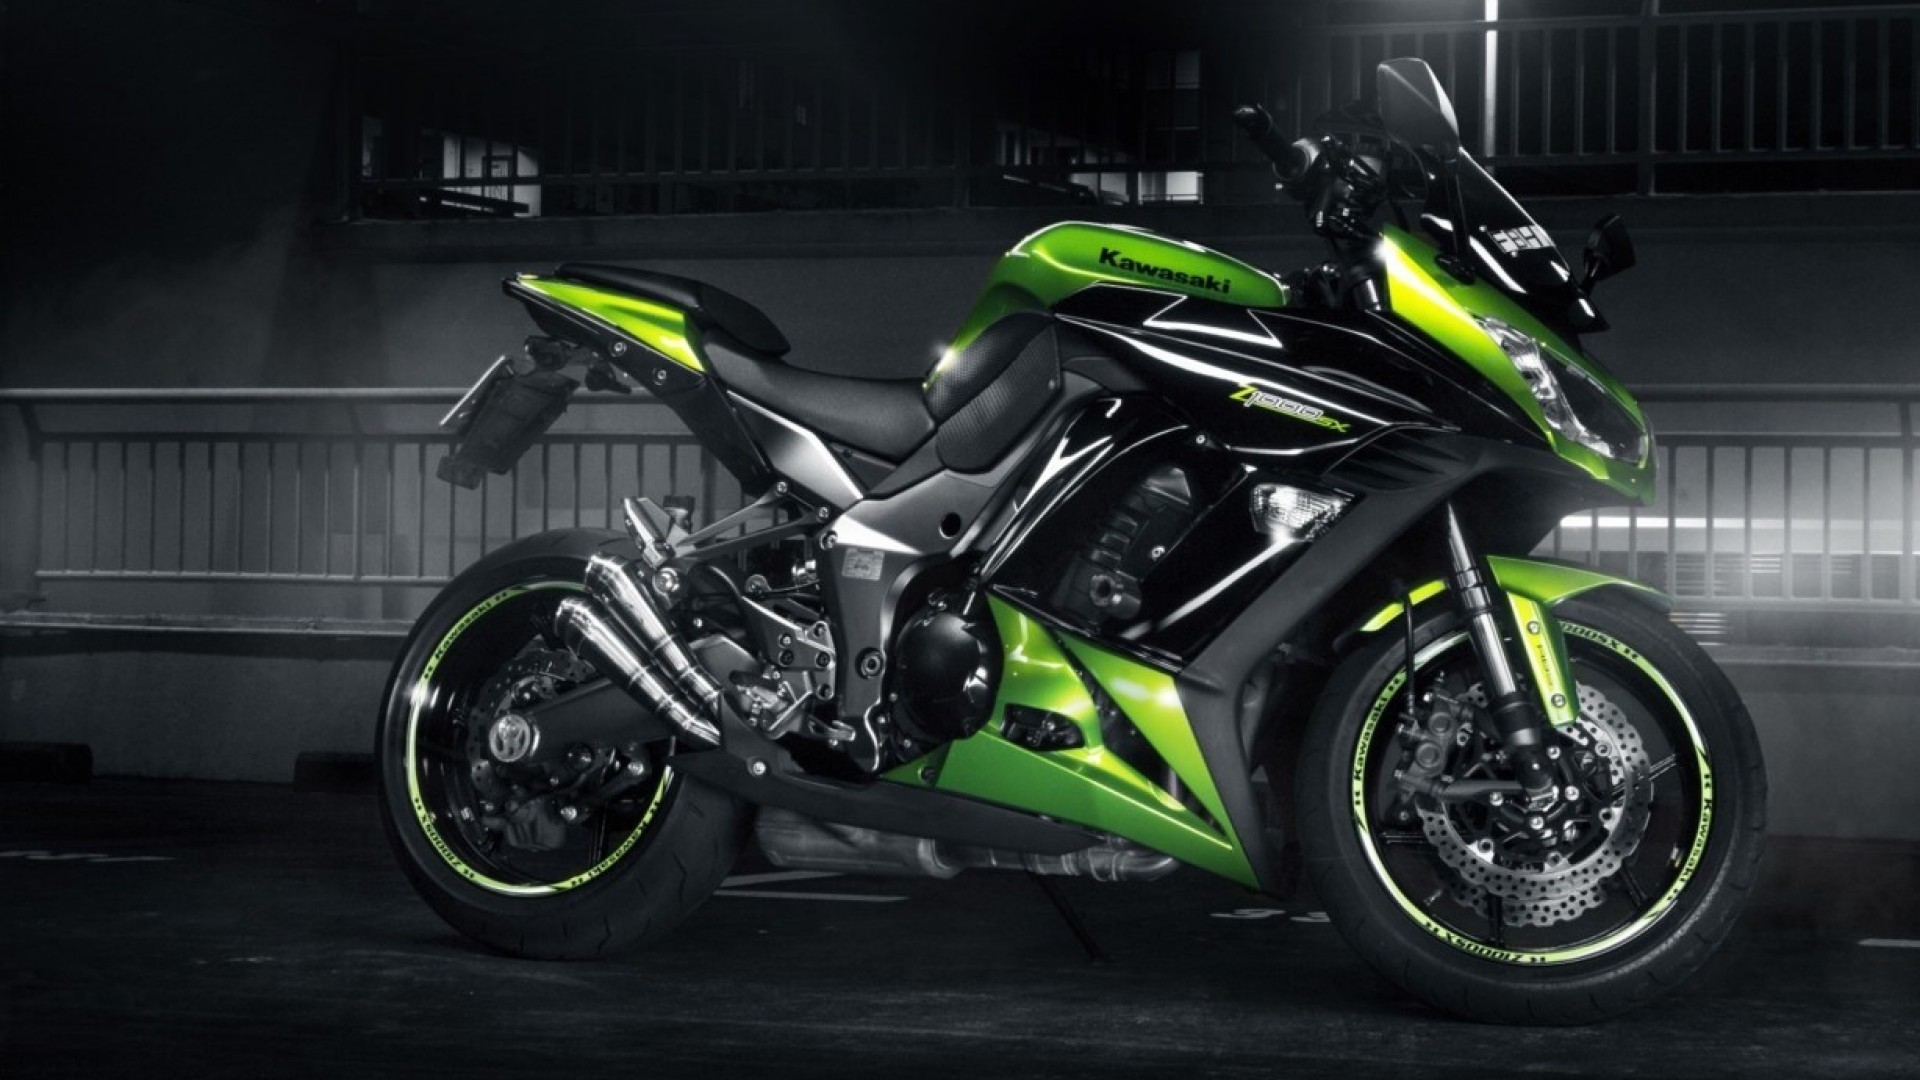 1920x1183 Download Bikes Wallpapers 3D Laptop HD Widescreen Wallpaper Or High Definition From The